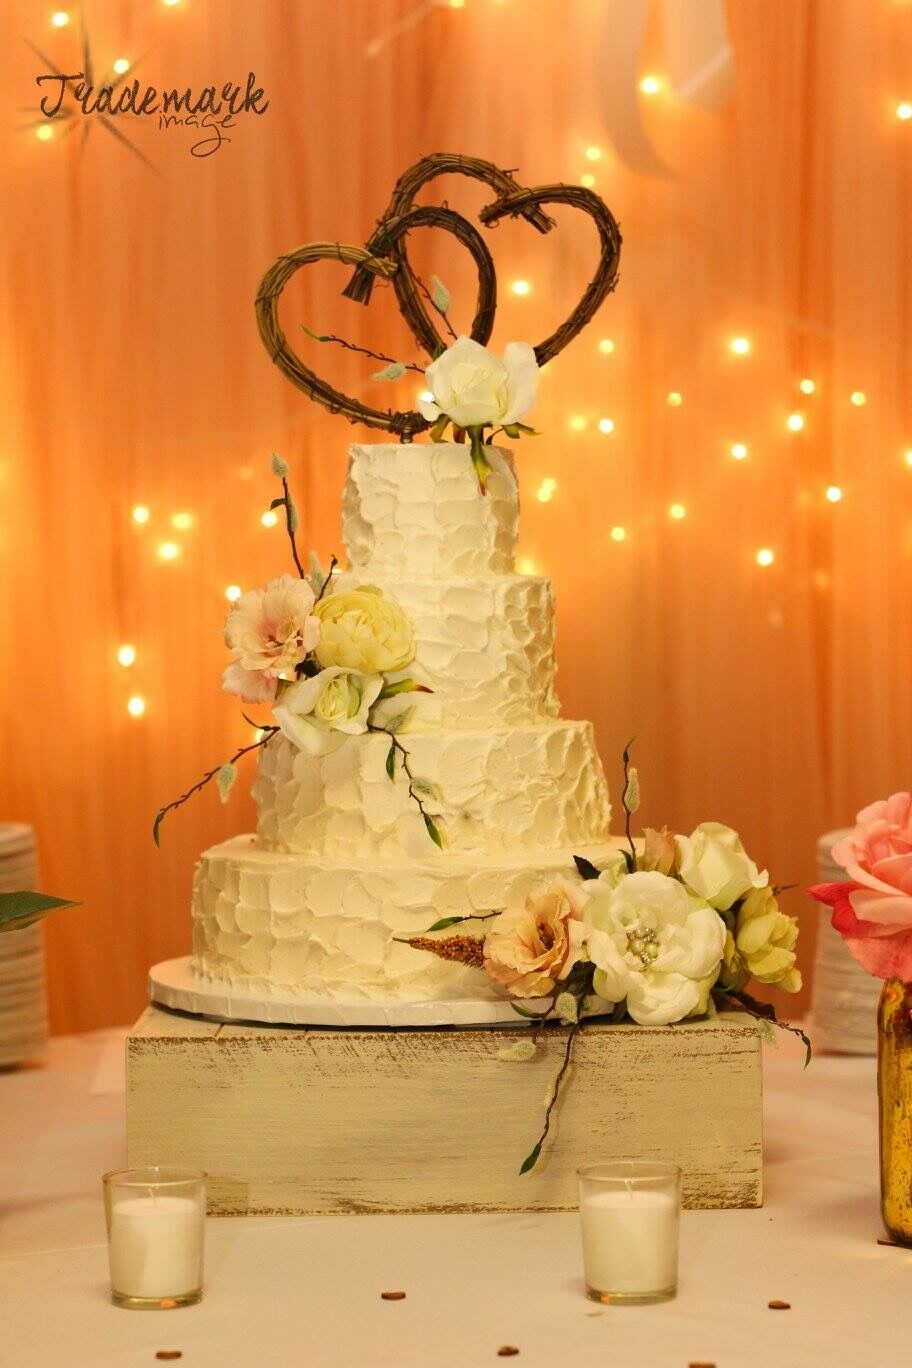 Wedding Cake Bakeries in Wauseon, OH - The Knot